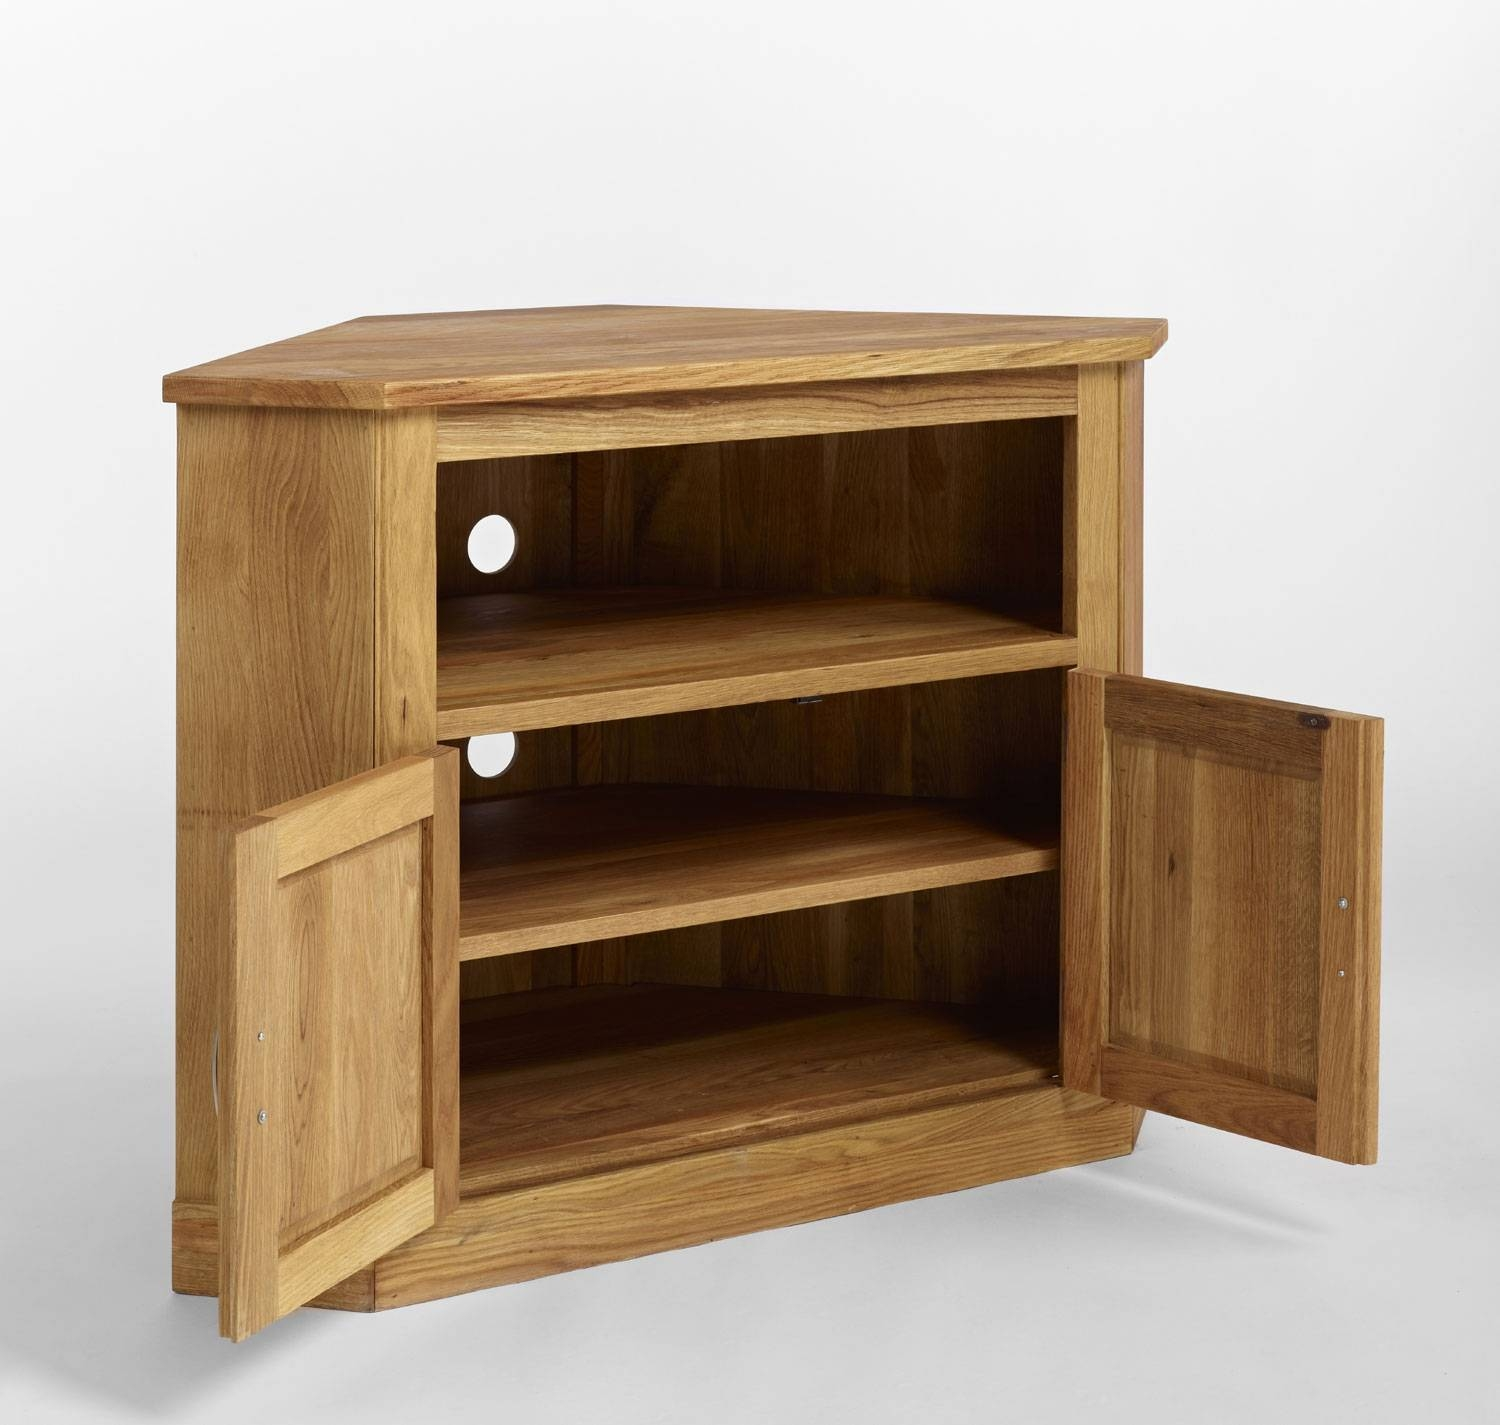 Brooklyn Contemporary Oak Corner Tv Cabinet Oak Furniture intended for Contemporary Oak Tv Cabinets (Image 2 of 15)